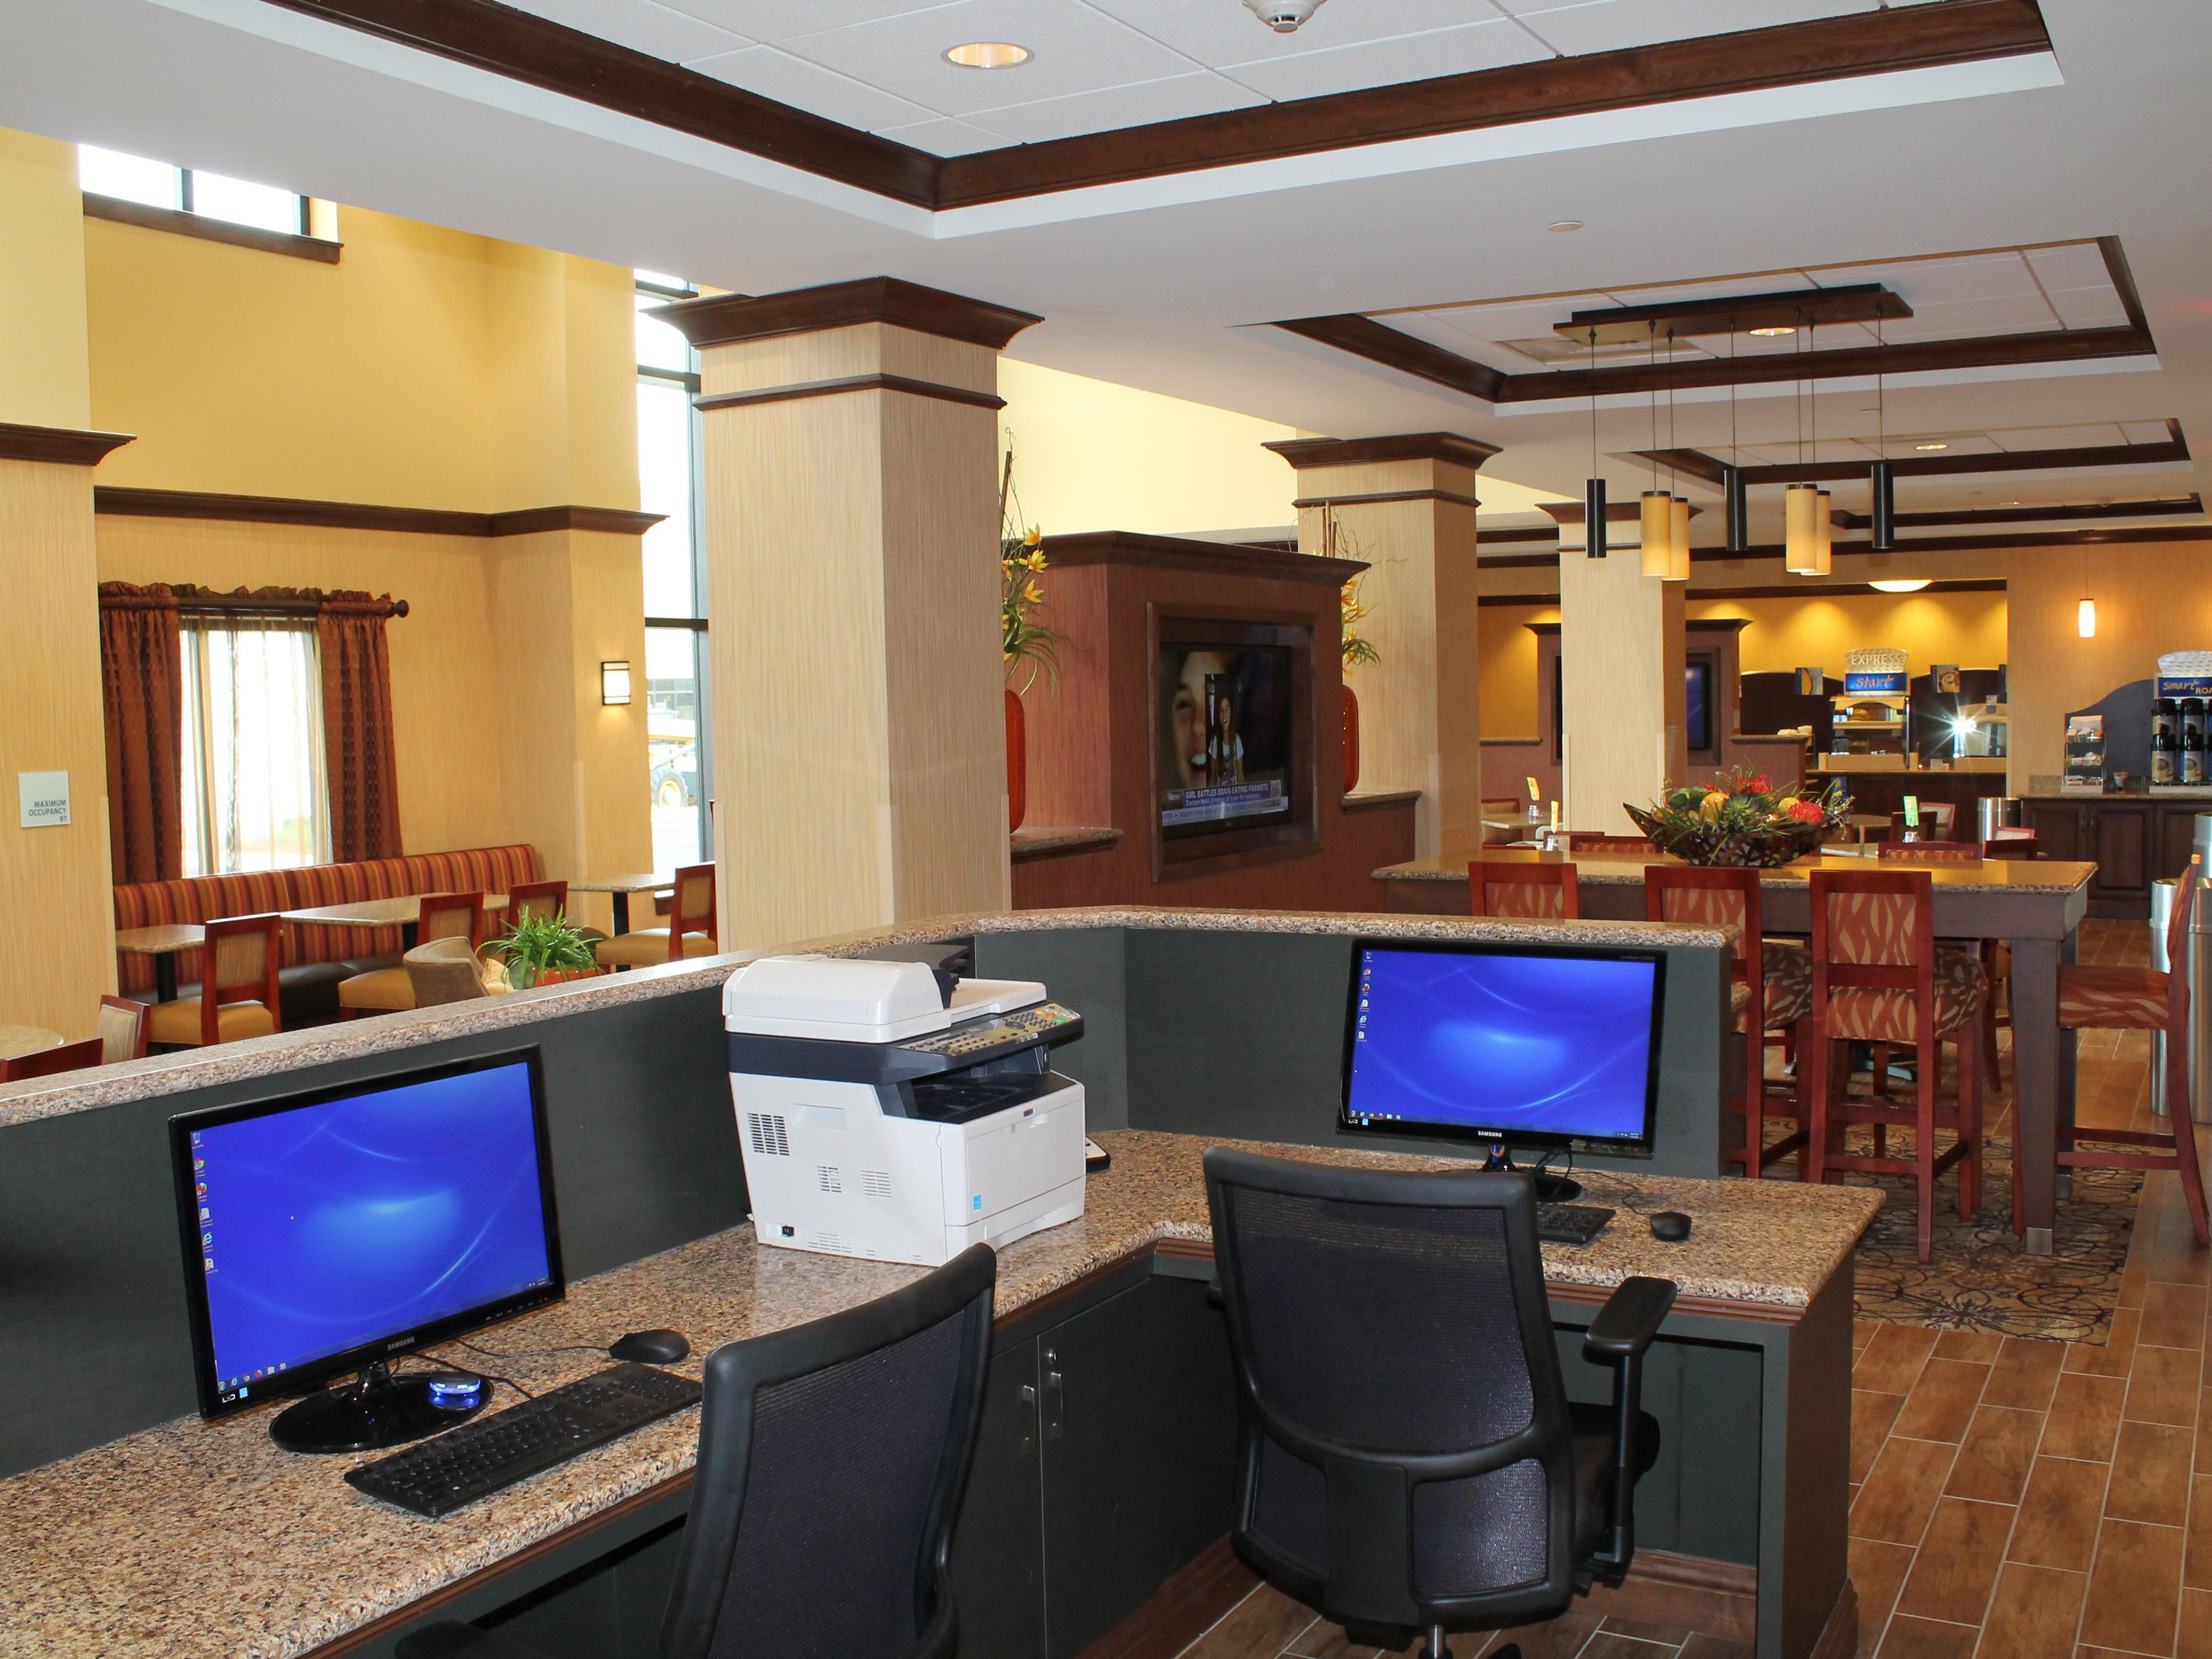 24-Hour Business Center with Printer in Lobby Area